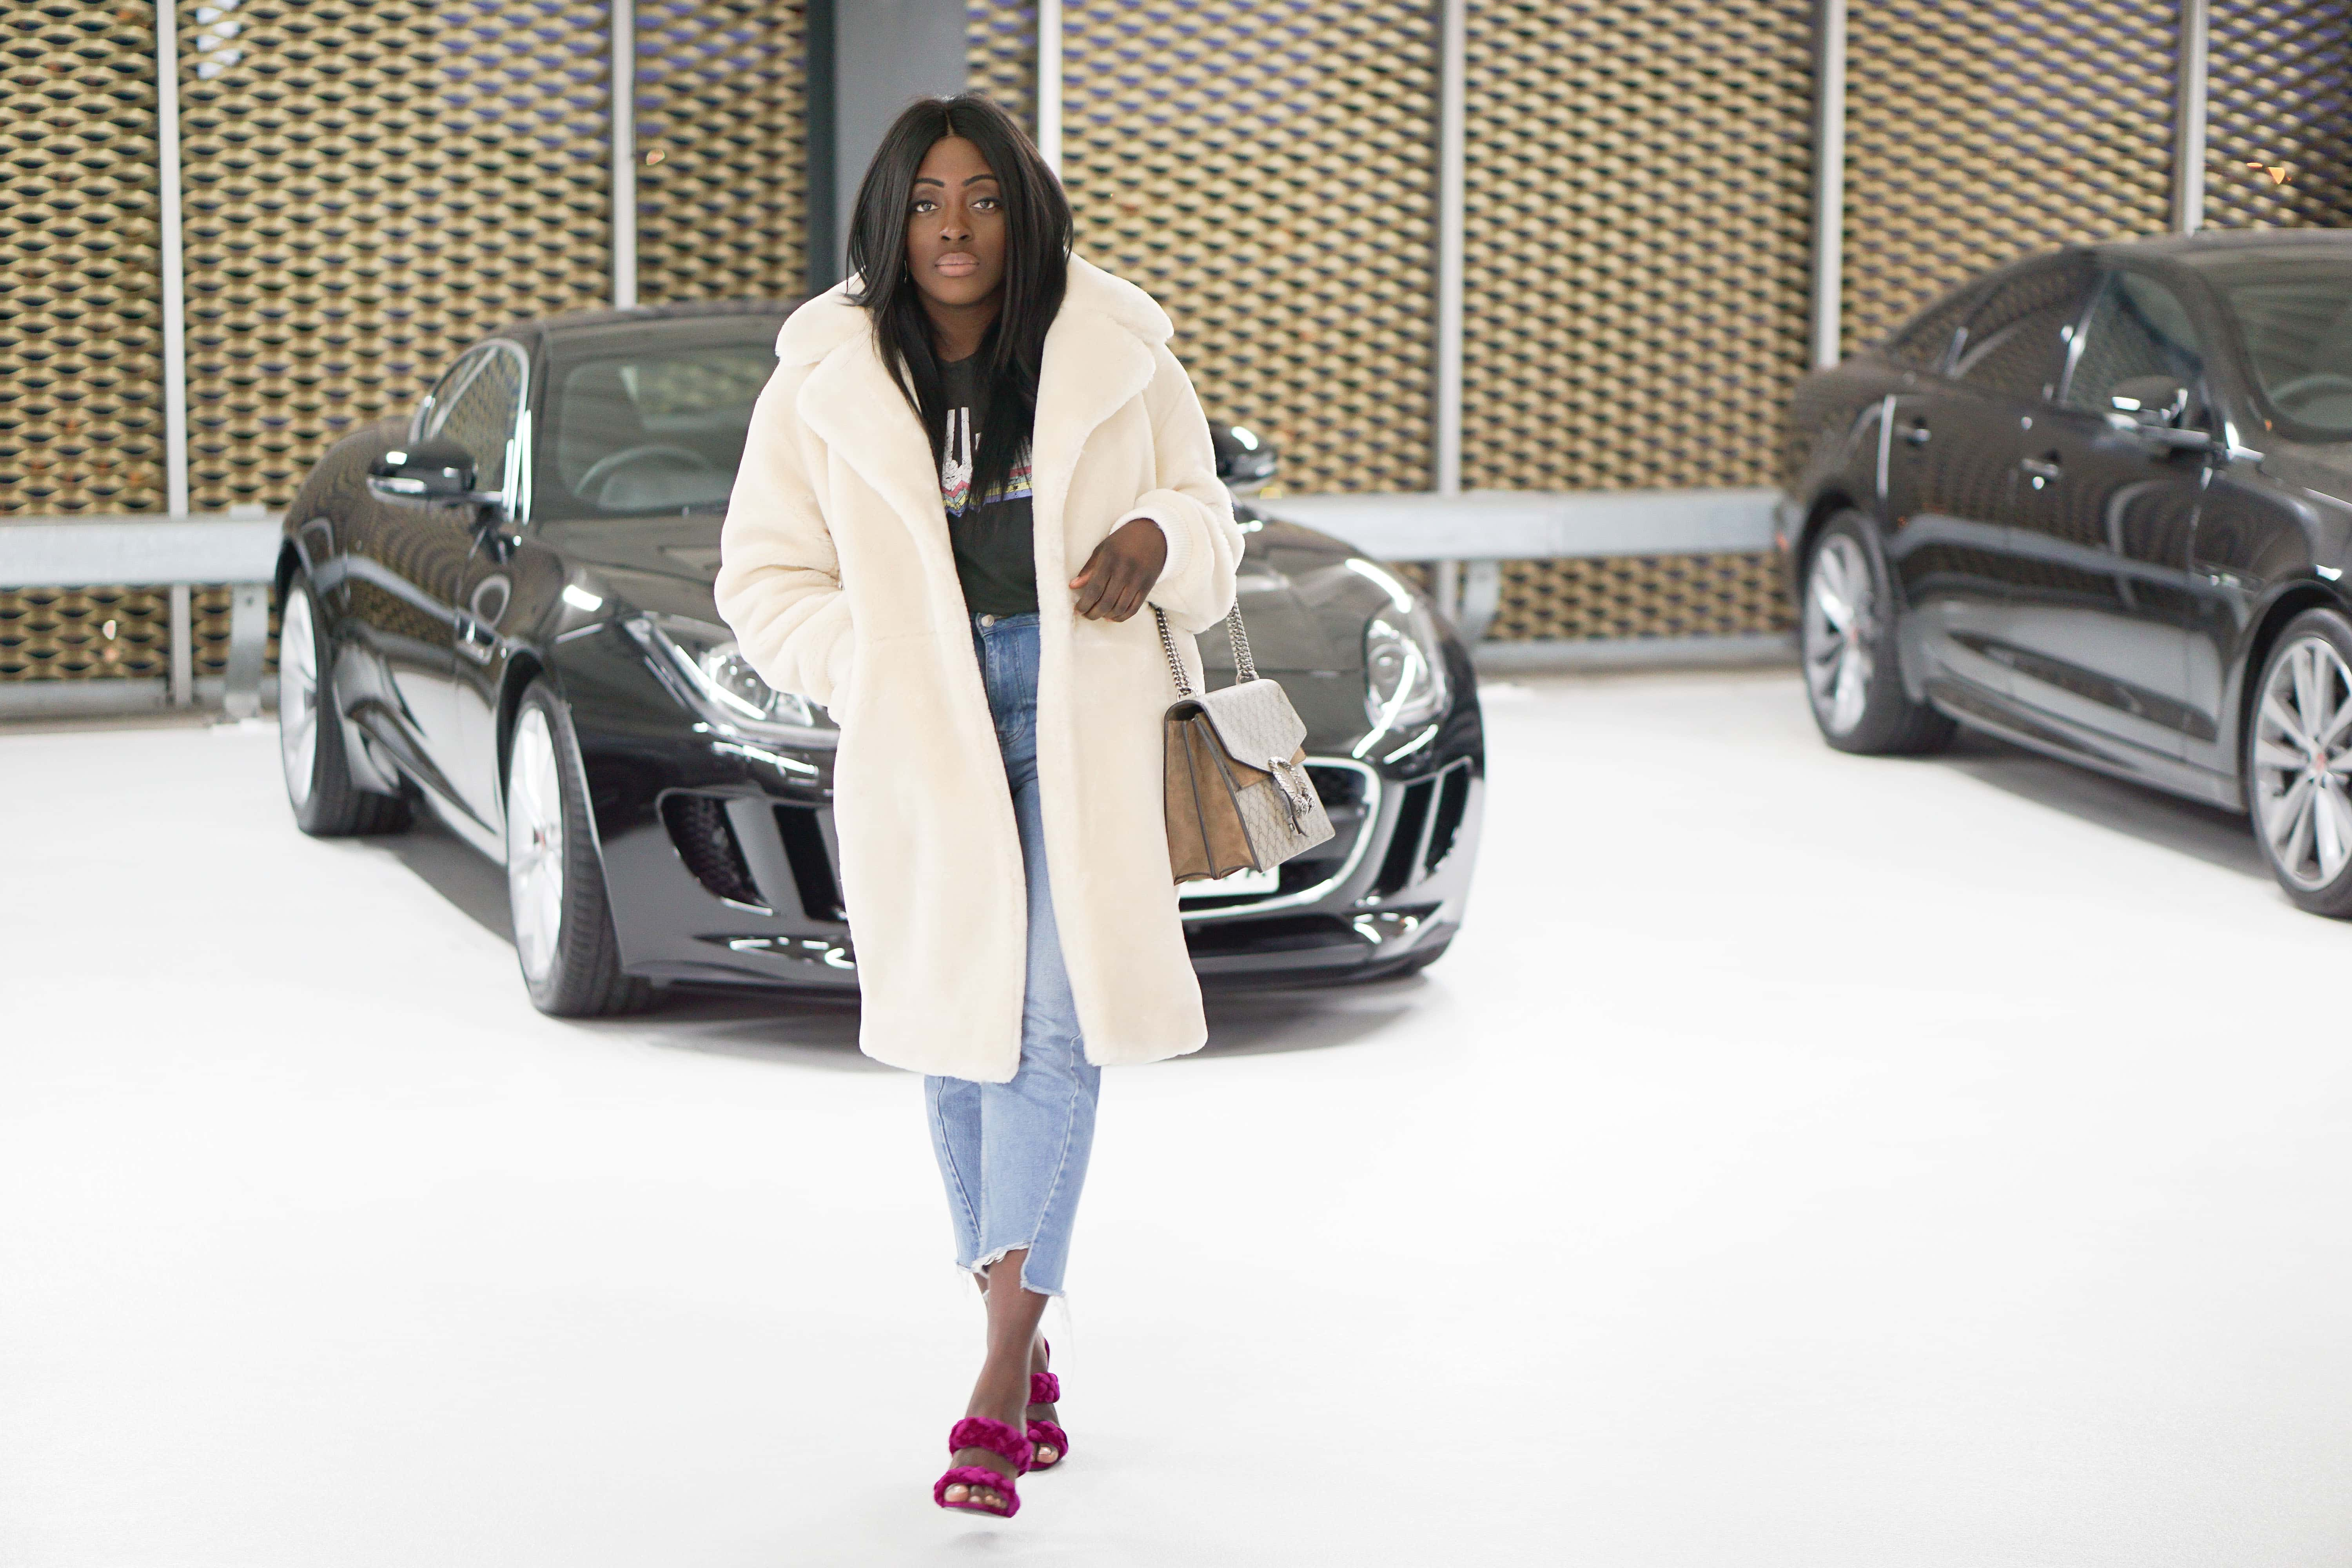 Fur Coats and Winter Car Park Sass 5 - Style and the Sass